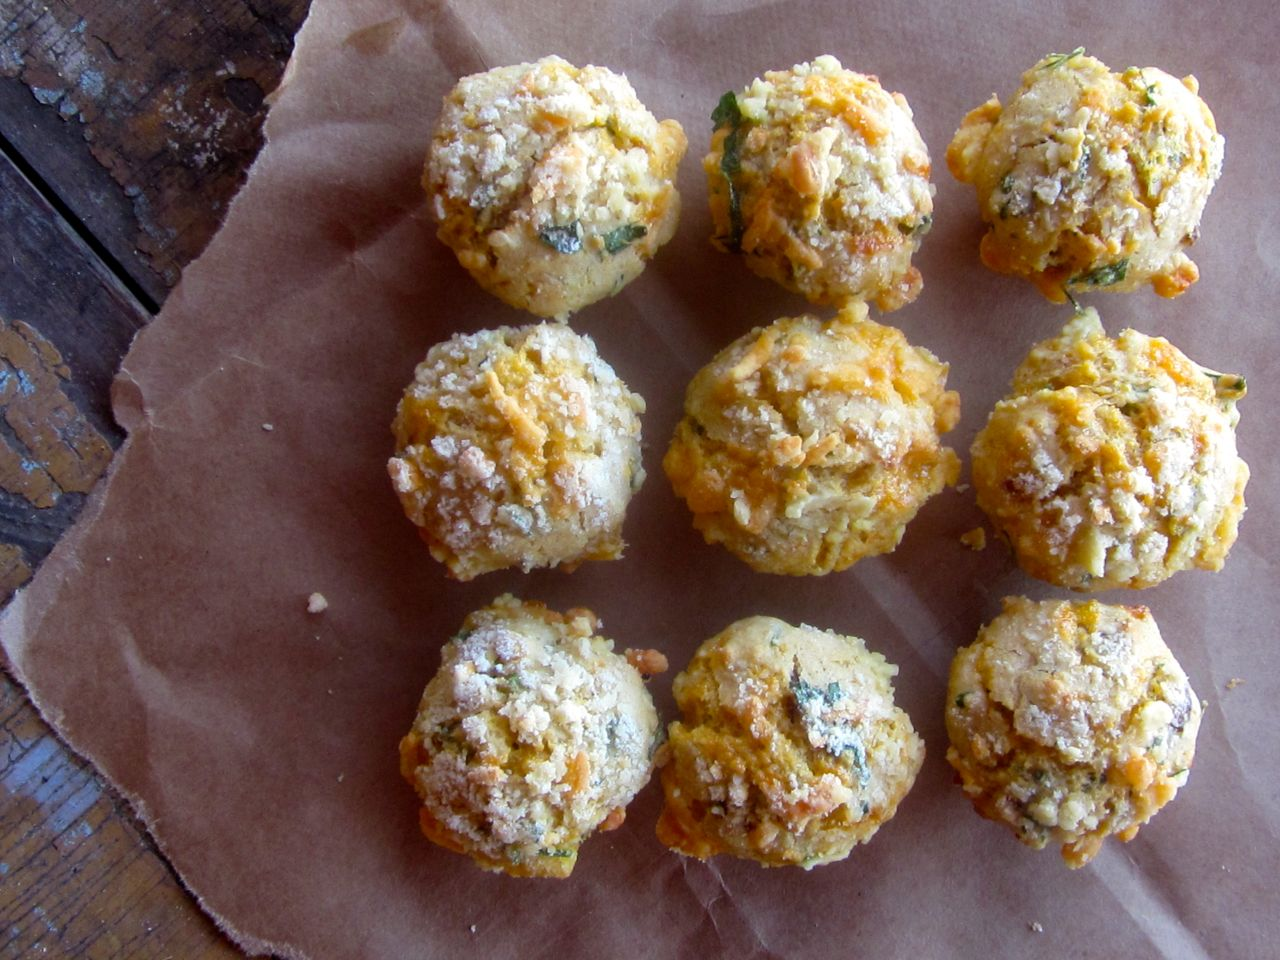 Crumble-topped Bacon & Cheddar Muffins: oh my!